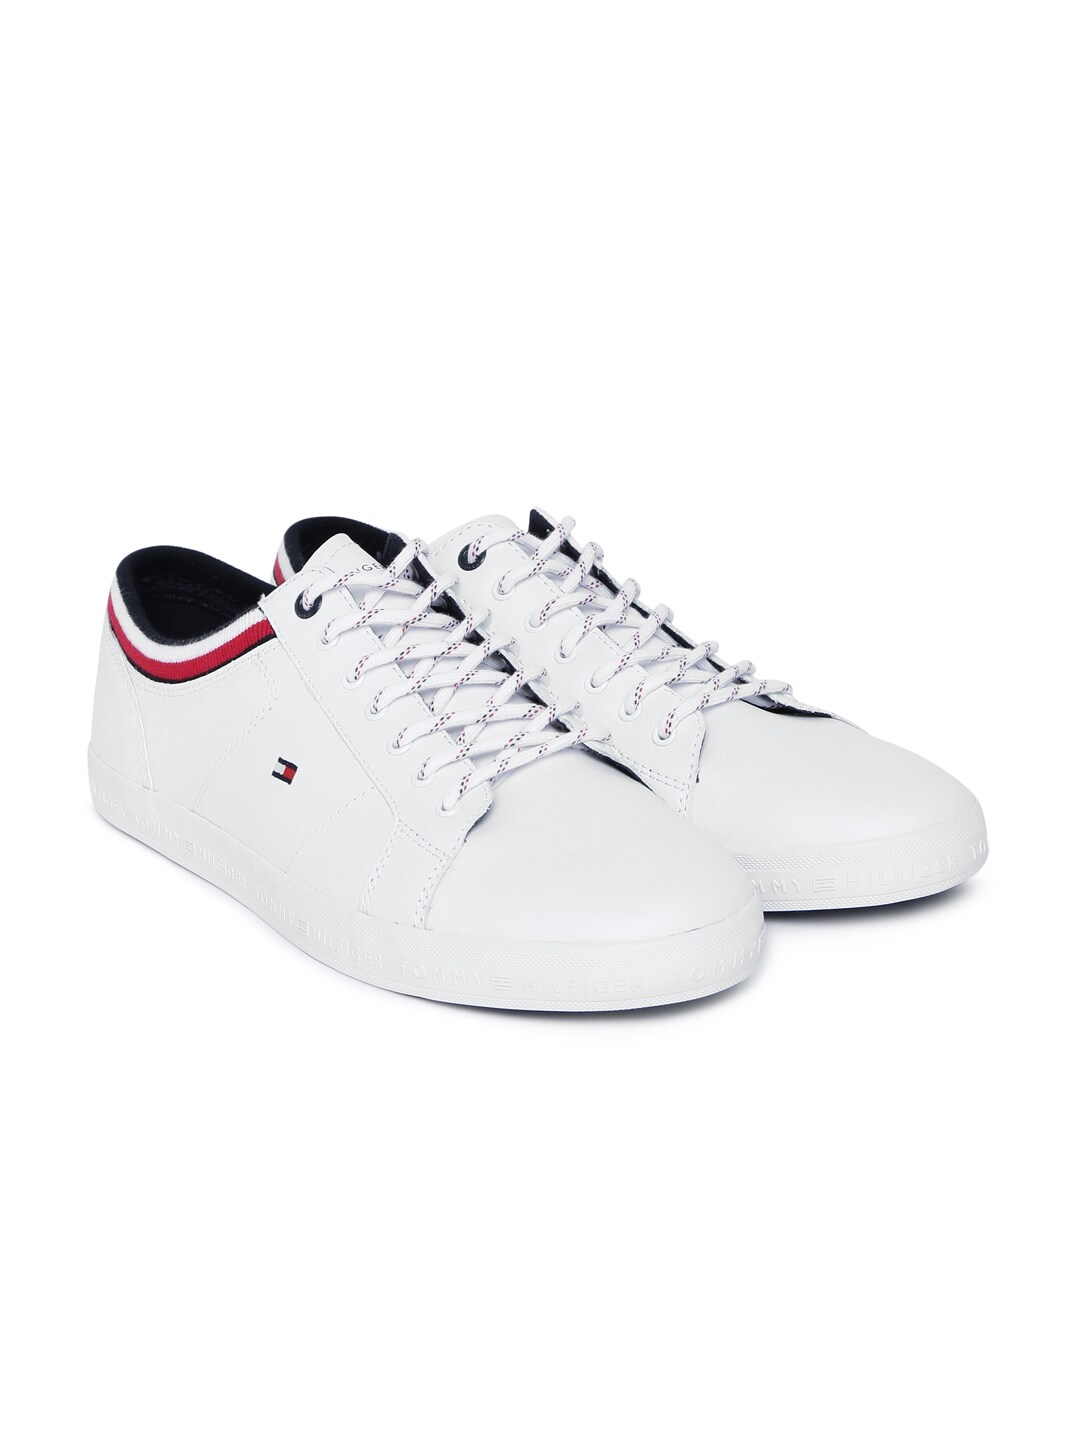 d45155f52 Tommy Hilfiger Shoes - Buy Tommy Hilfiger Shoes Online - Myntra